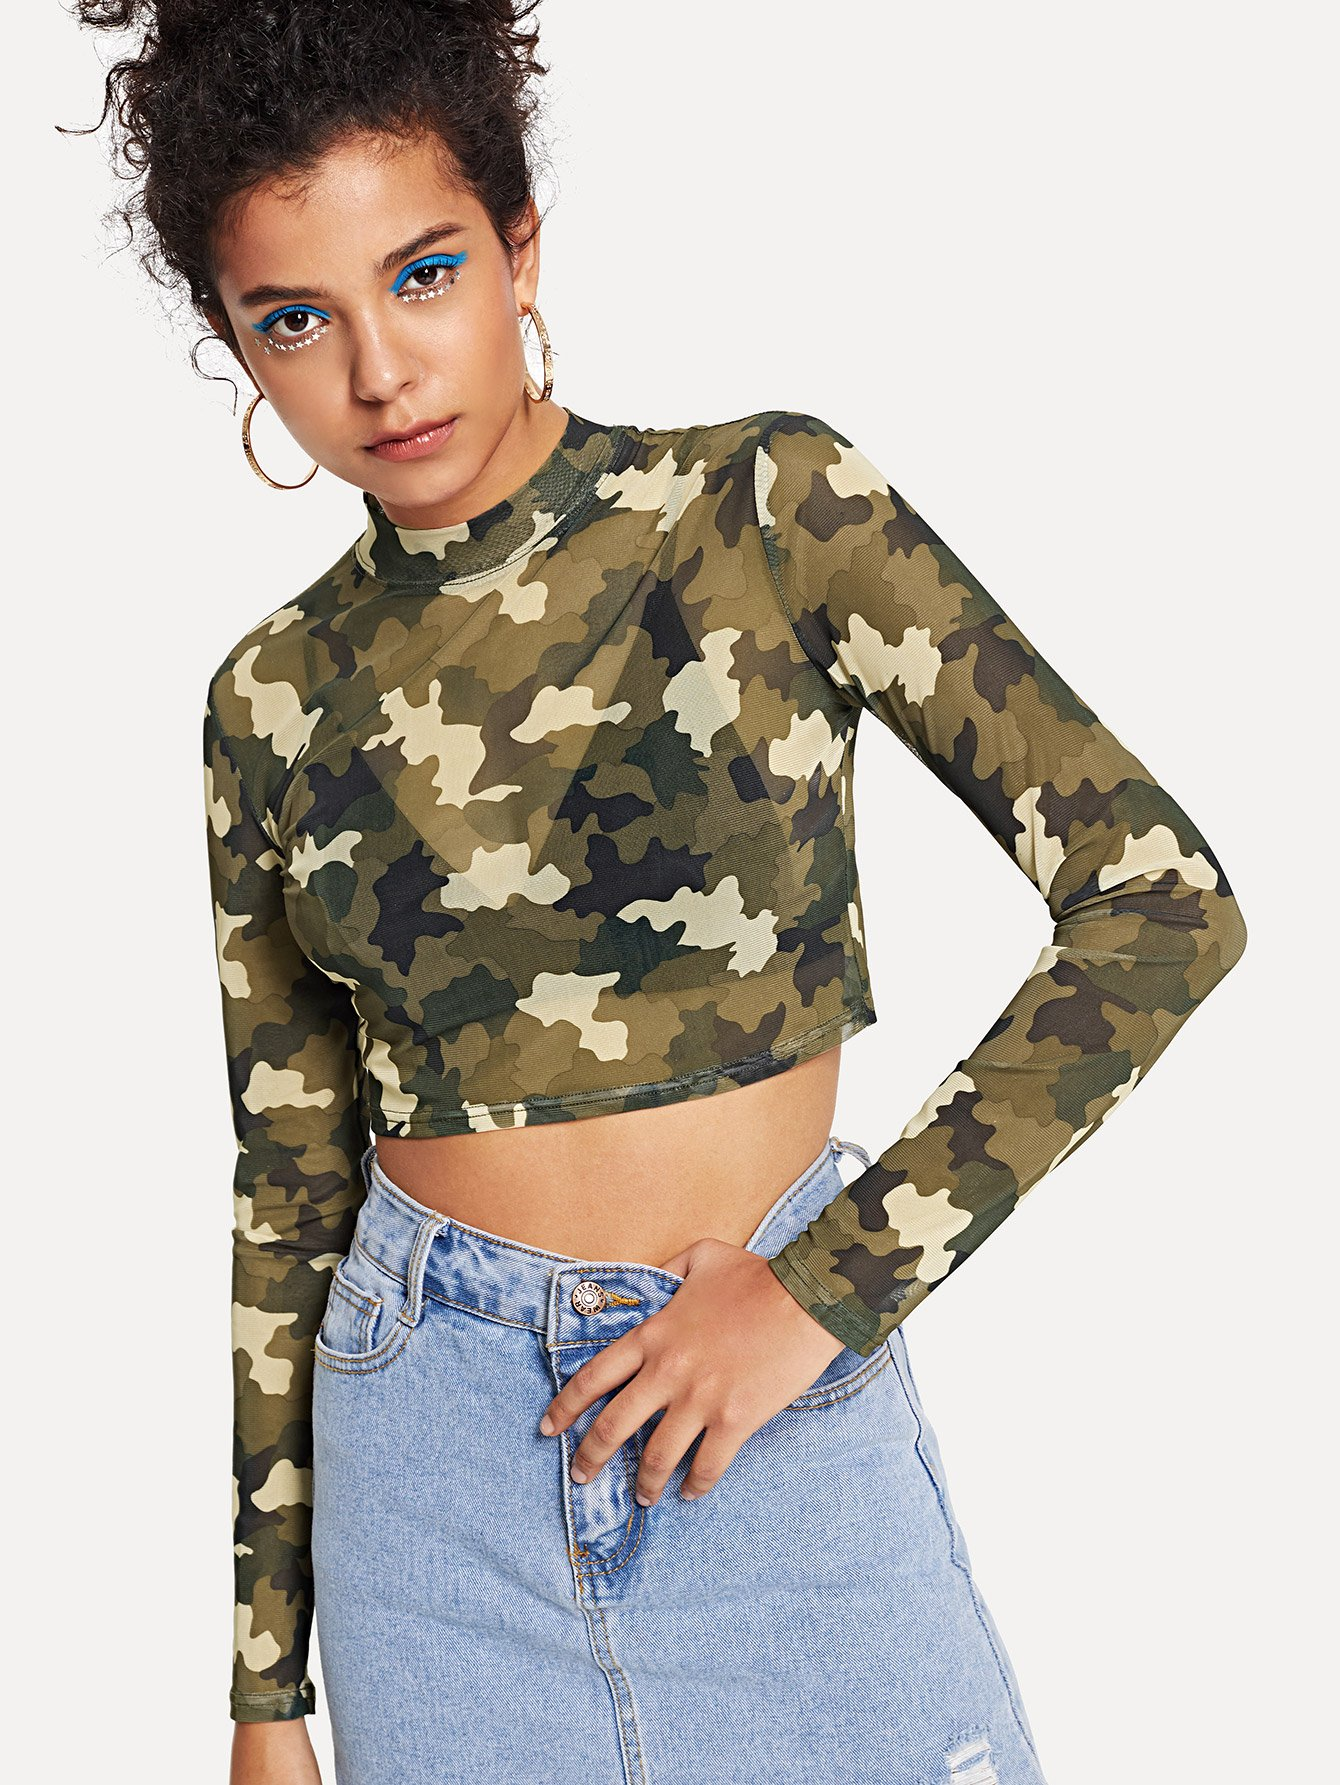 Camo Print Mock Neck Sheer Tee